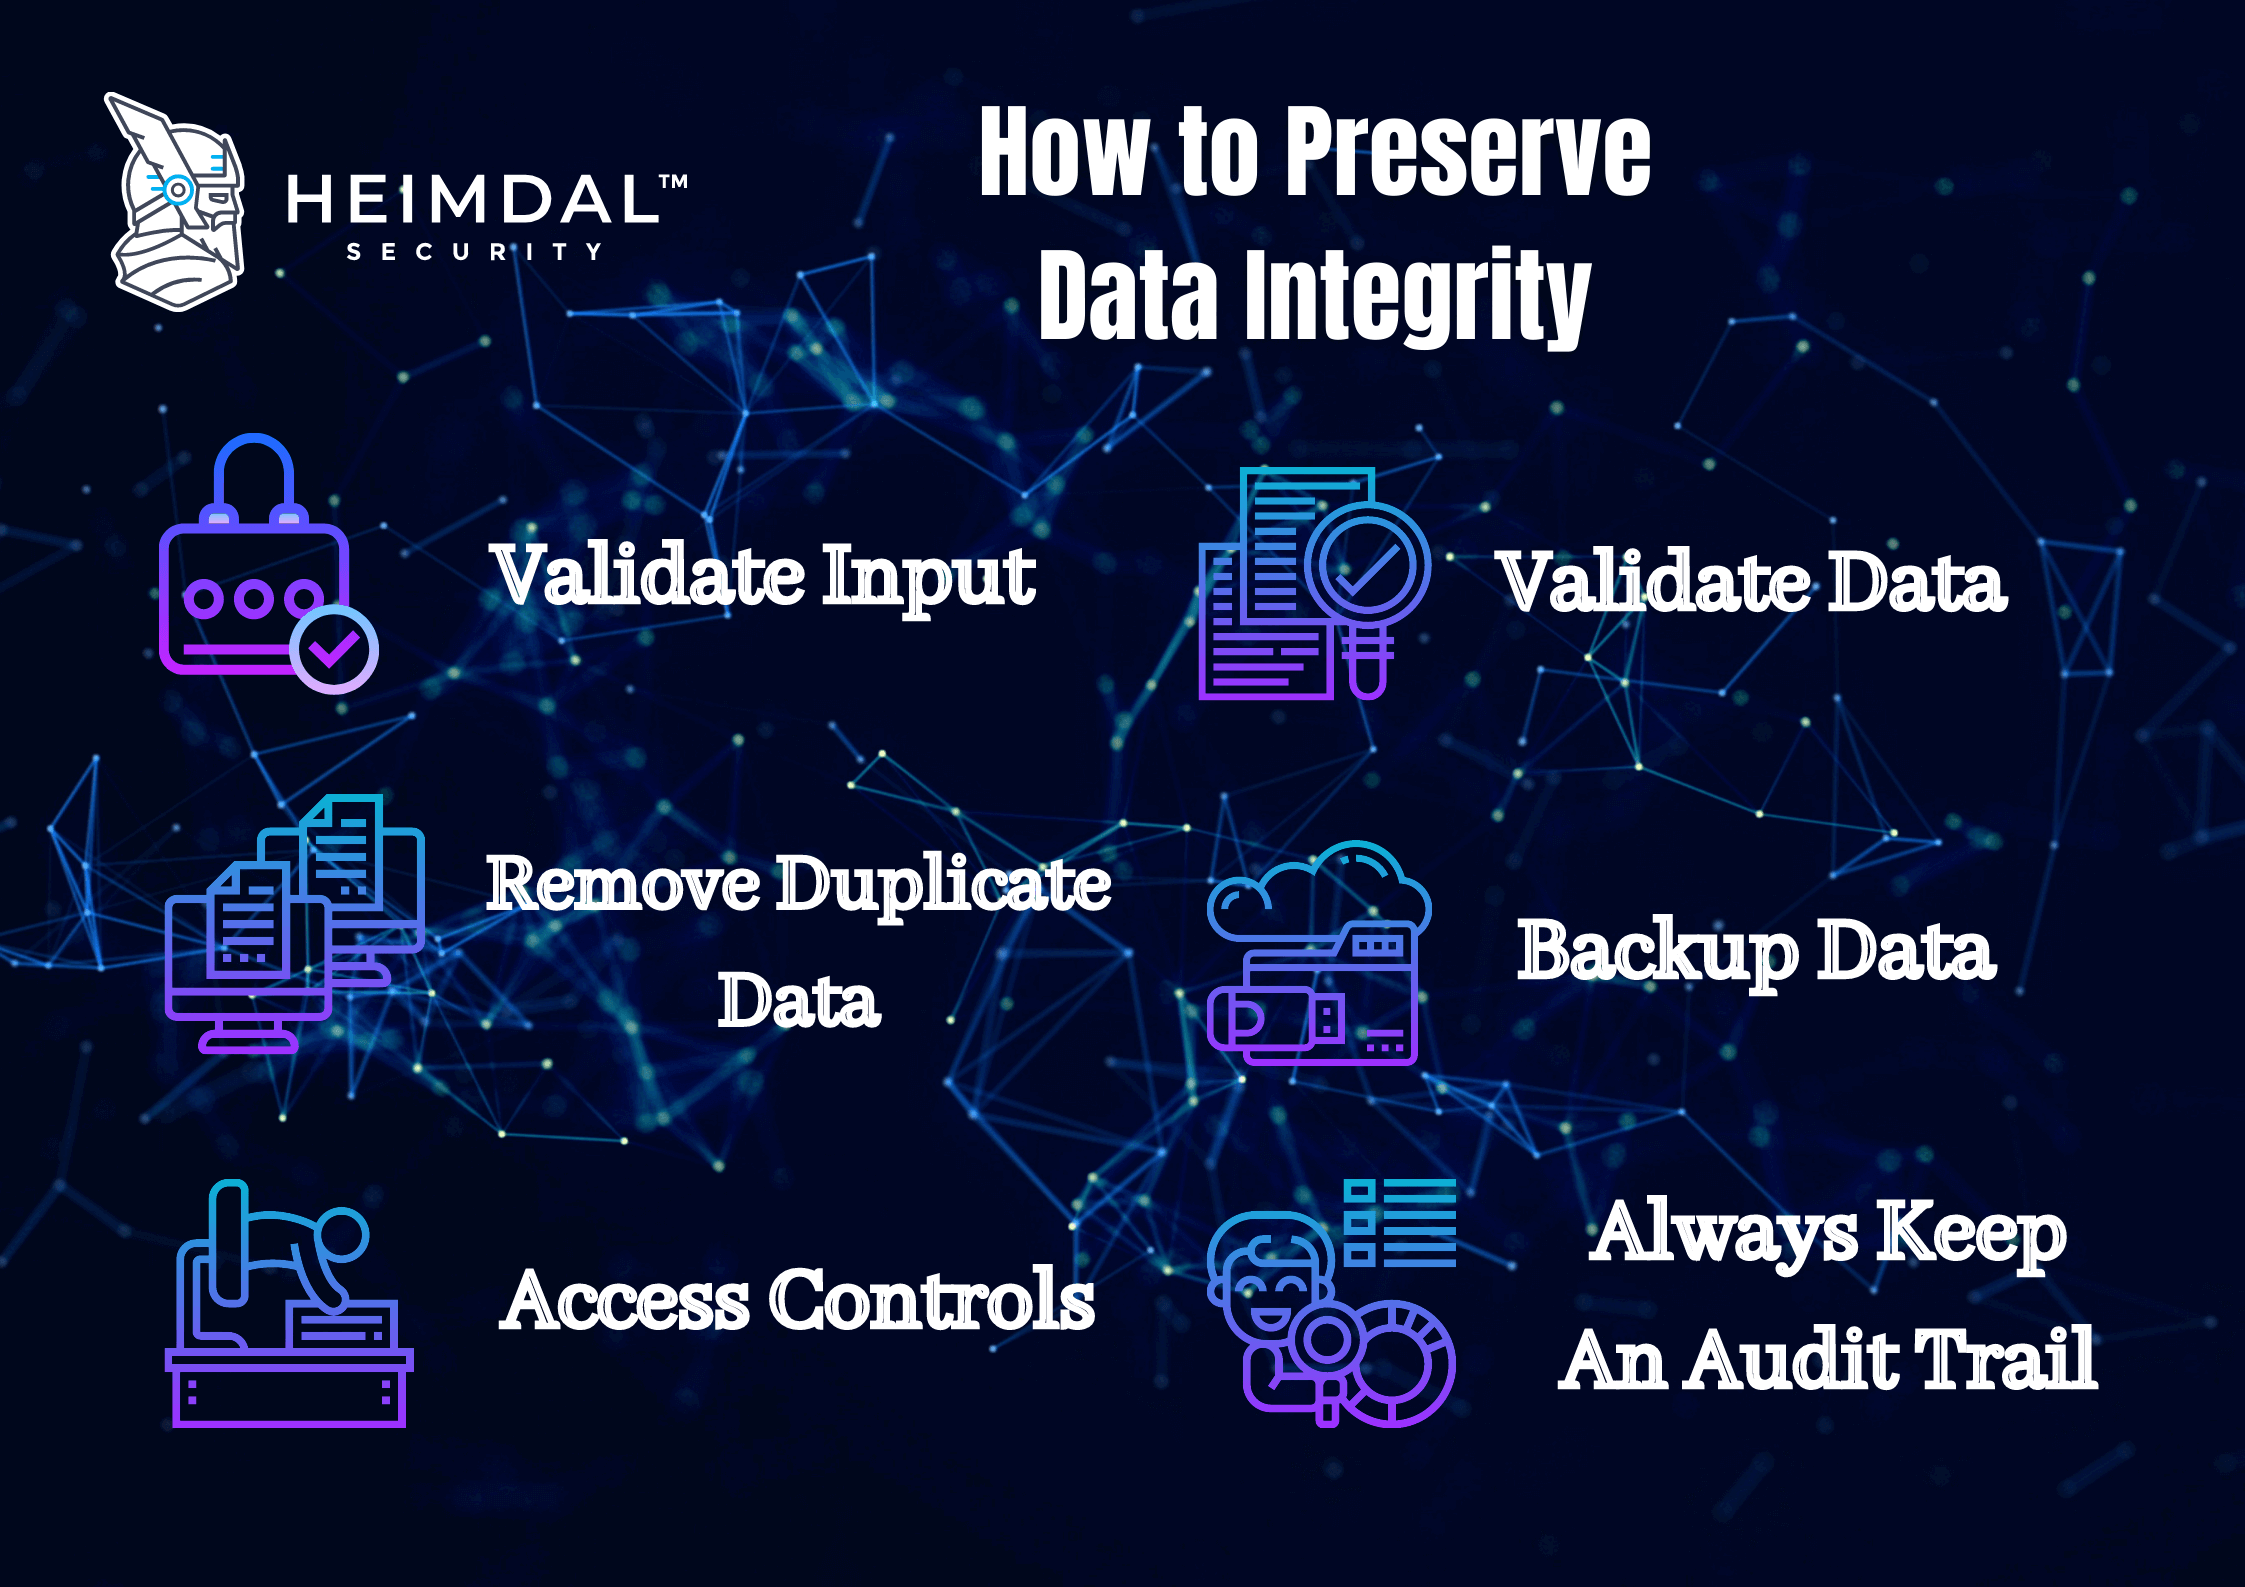 How to Preserve Data Integrity